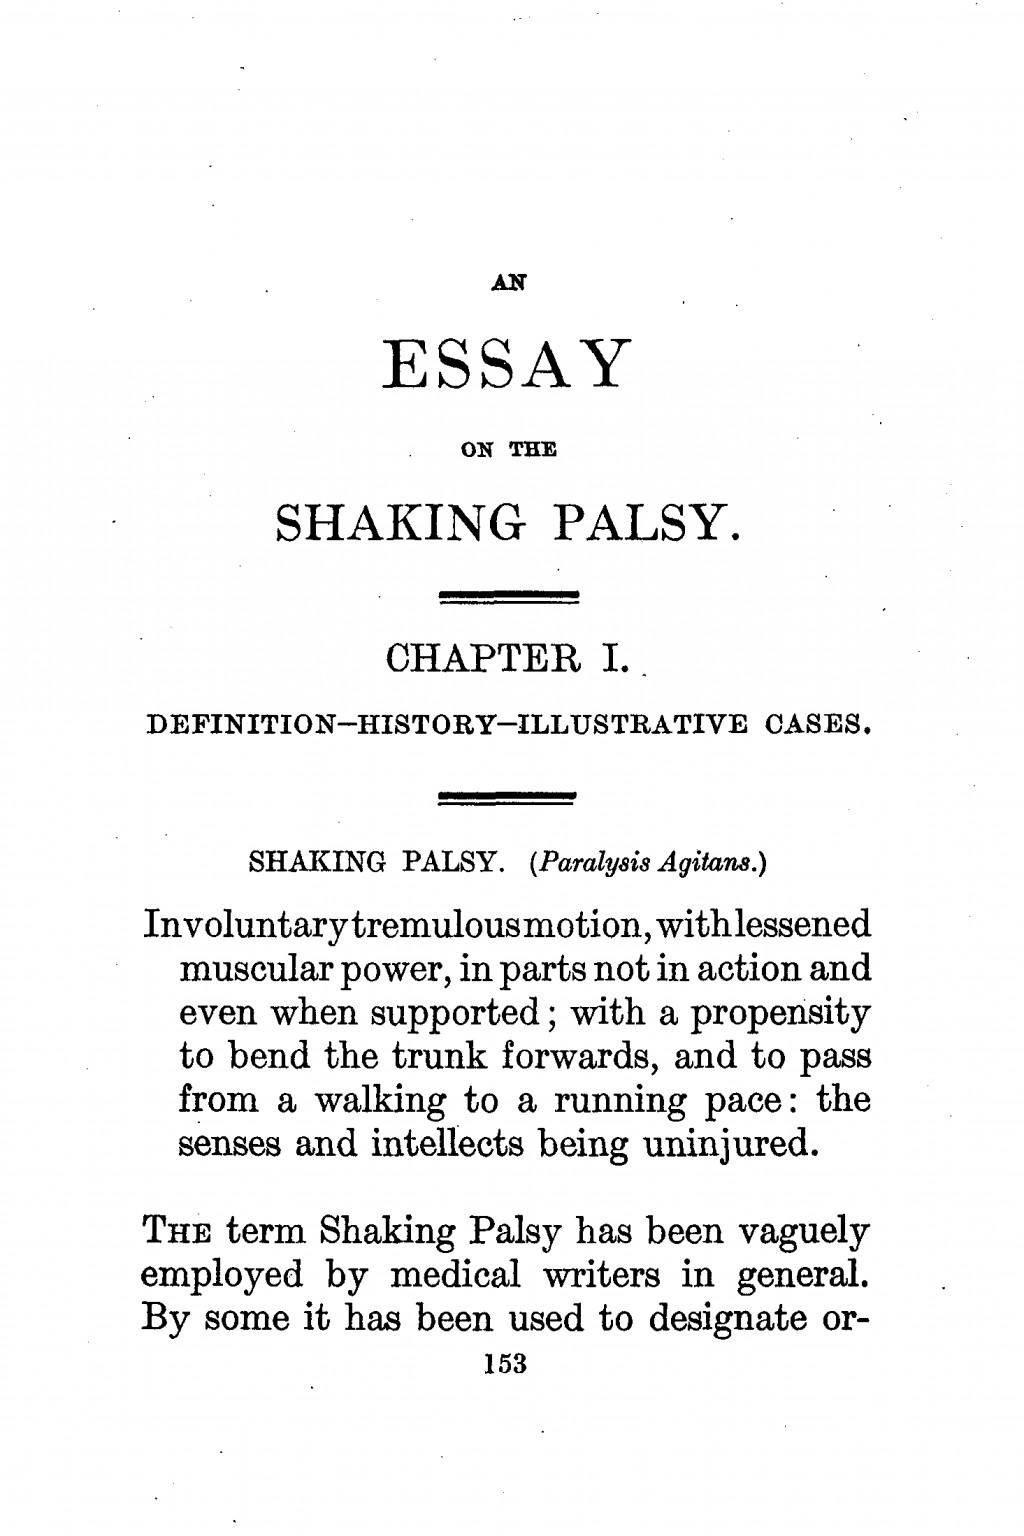 003 First Essay Parkinson2c An On The Shaking Palsy 28first Page29 Rare Day At University Nietzsche Week Large